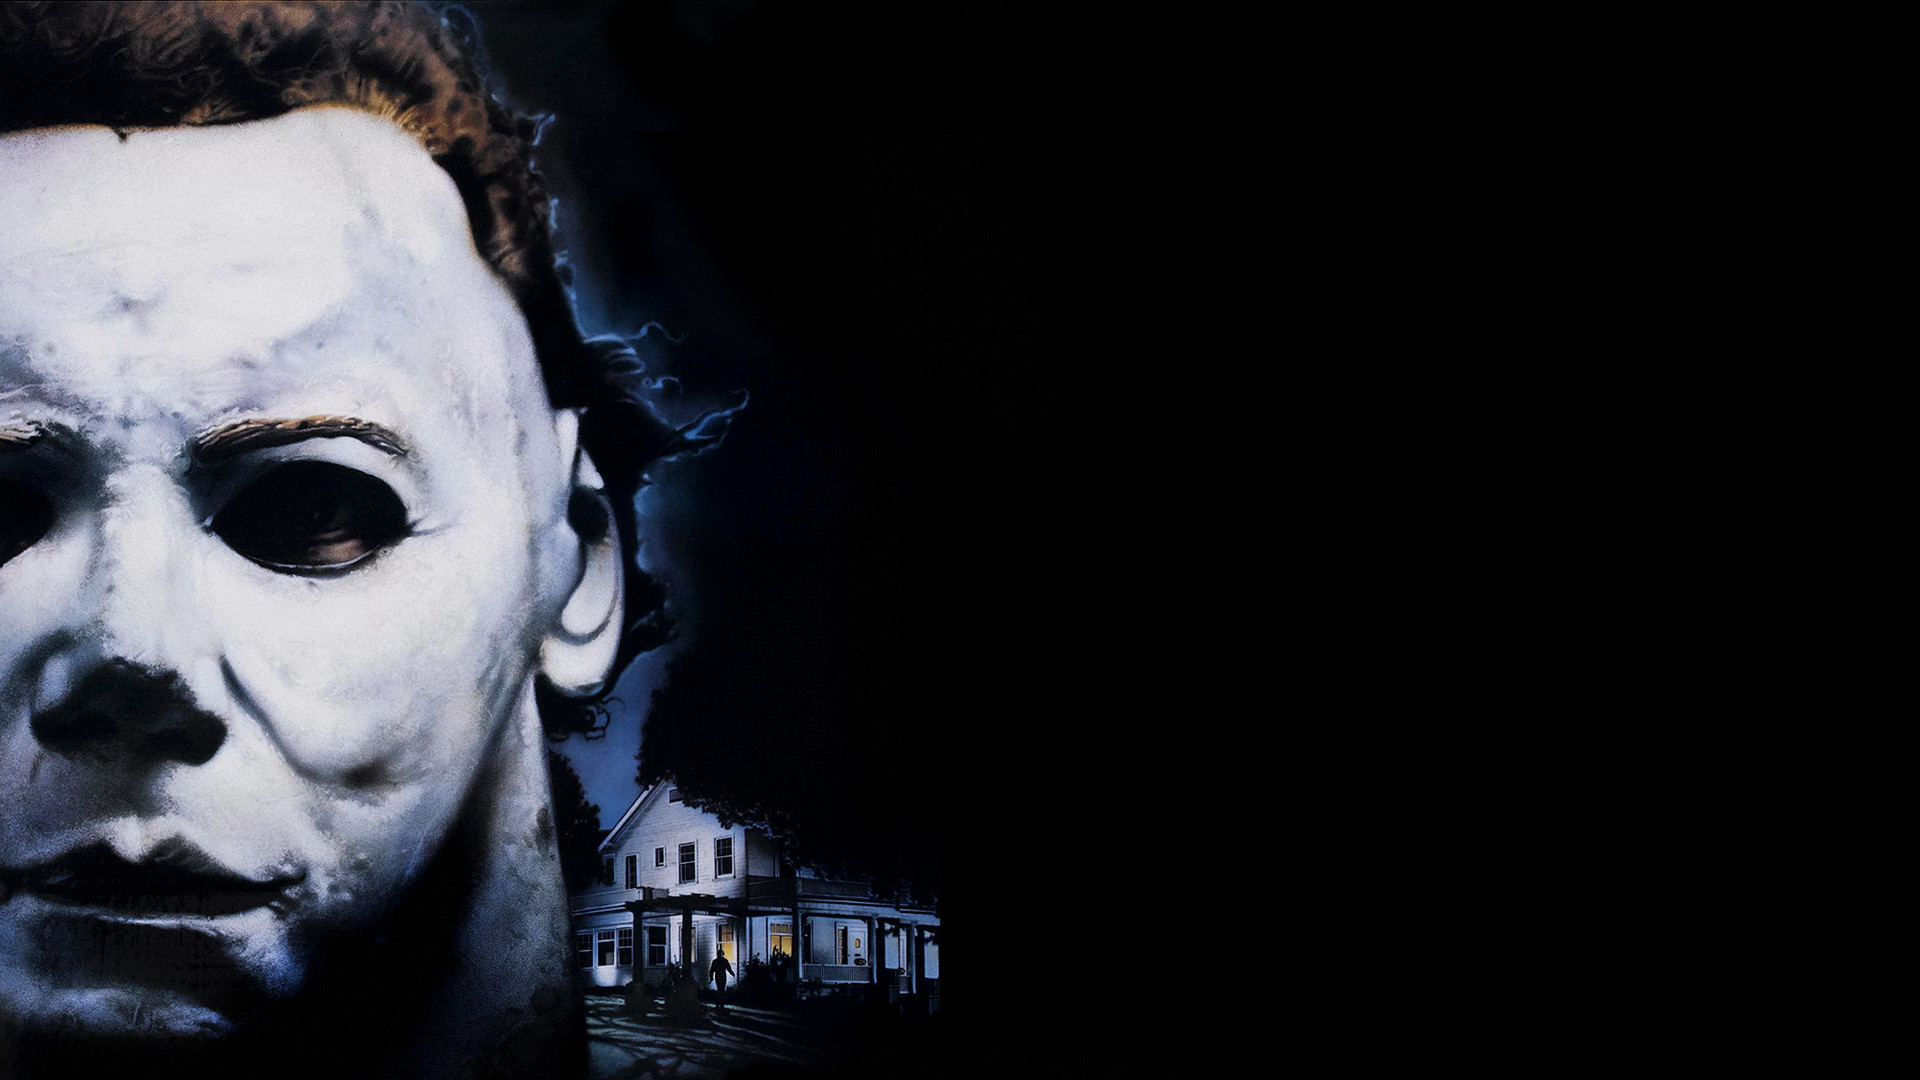 1 Halloween 4: The Return of Michael Myers HD Wallpapers   Backgrounds –  Wallpaper Abyss